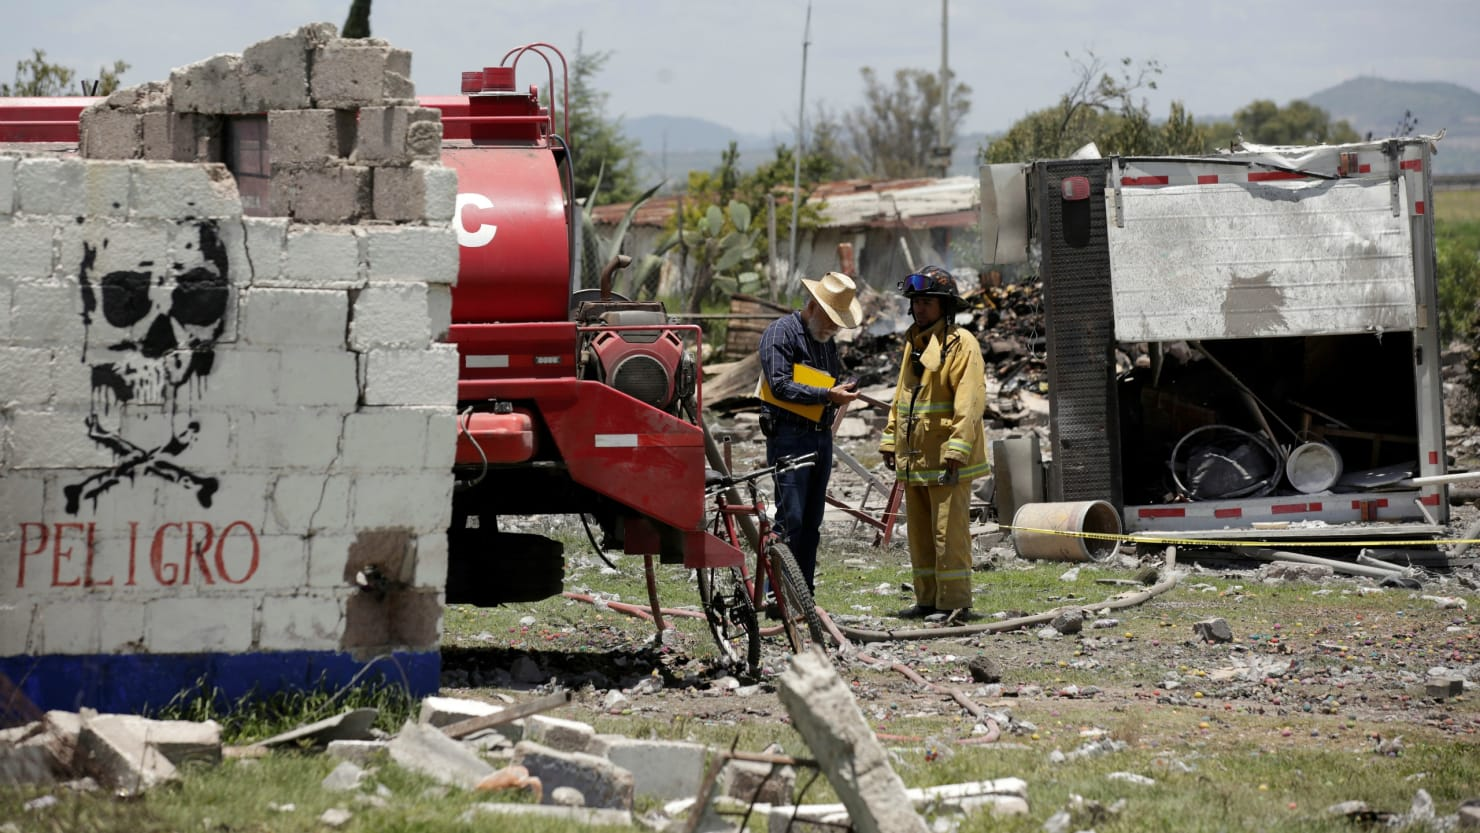 Fireworks explosions near Mexico City killed 19 people and dozens injured 3